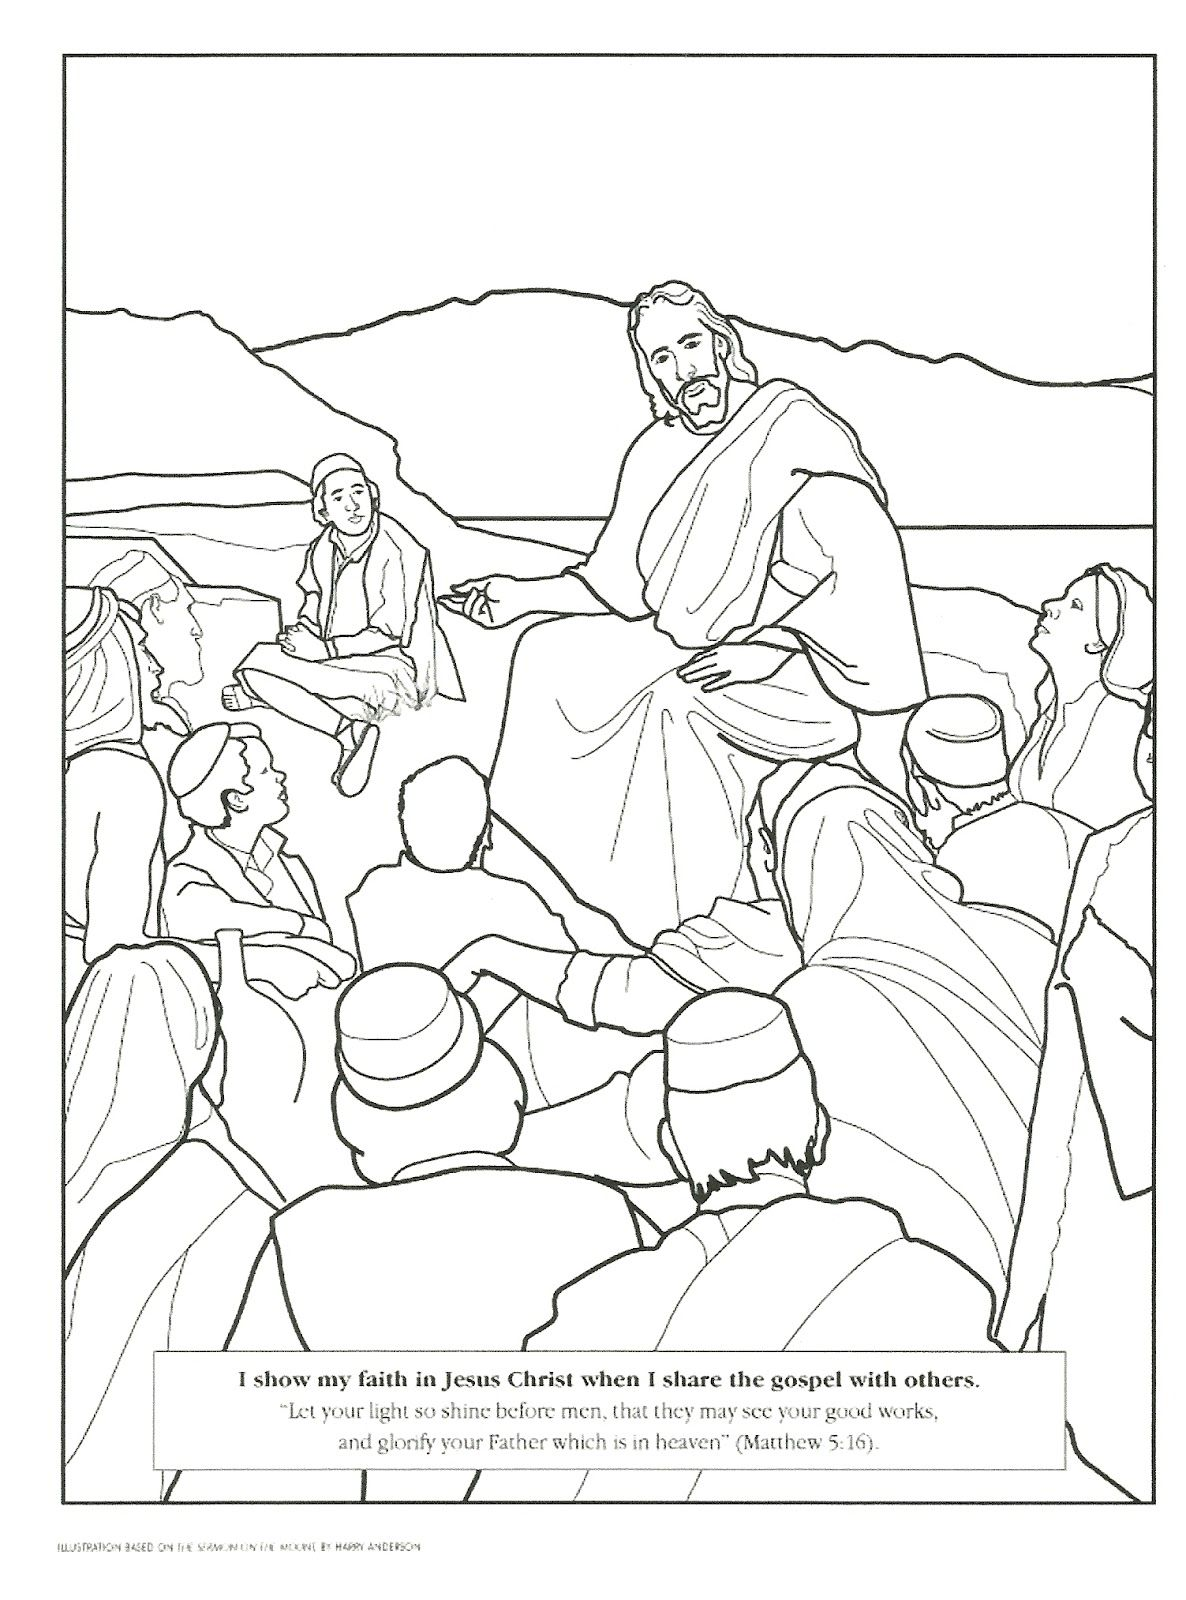 Primary 2 Manual Lesson 22 Blessed Are the Peacemakers